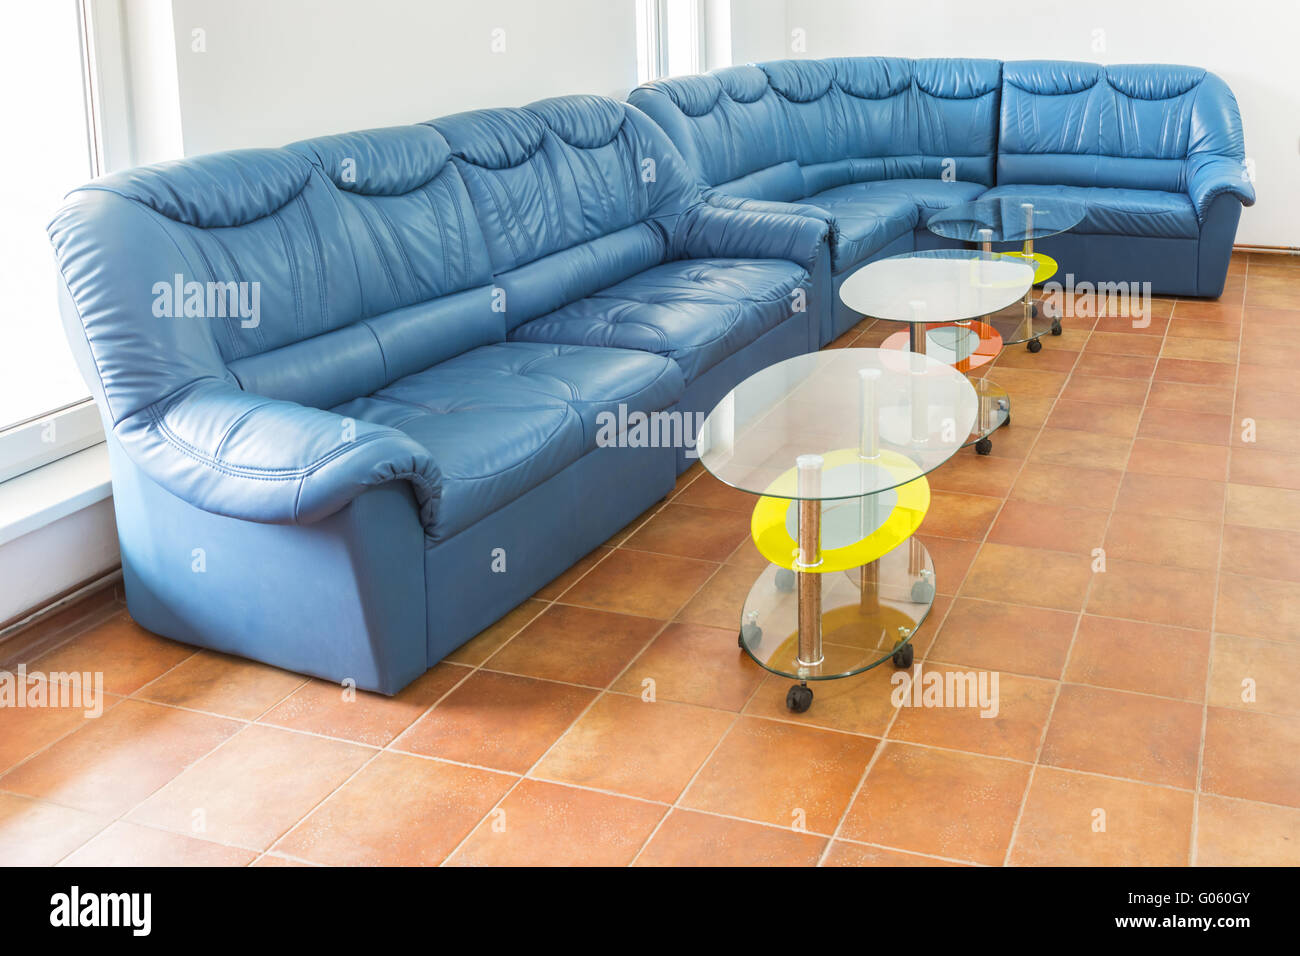 Astounding Empty Waiting Room With A Big Blue Sofa And Two Small Tables Uwap Interior Chair Design Uwaporg